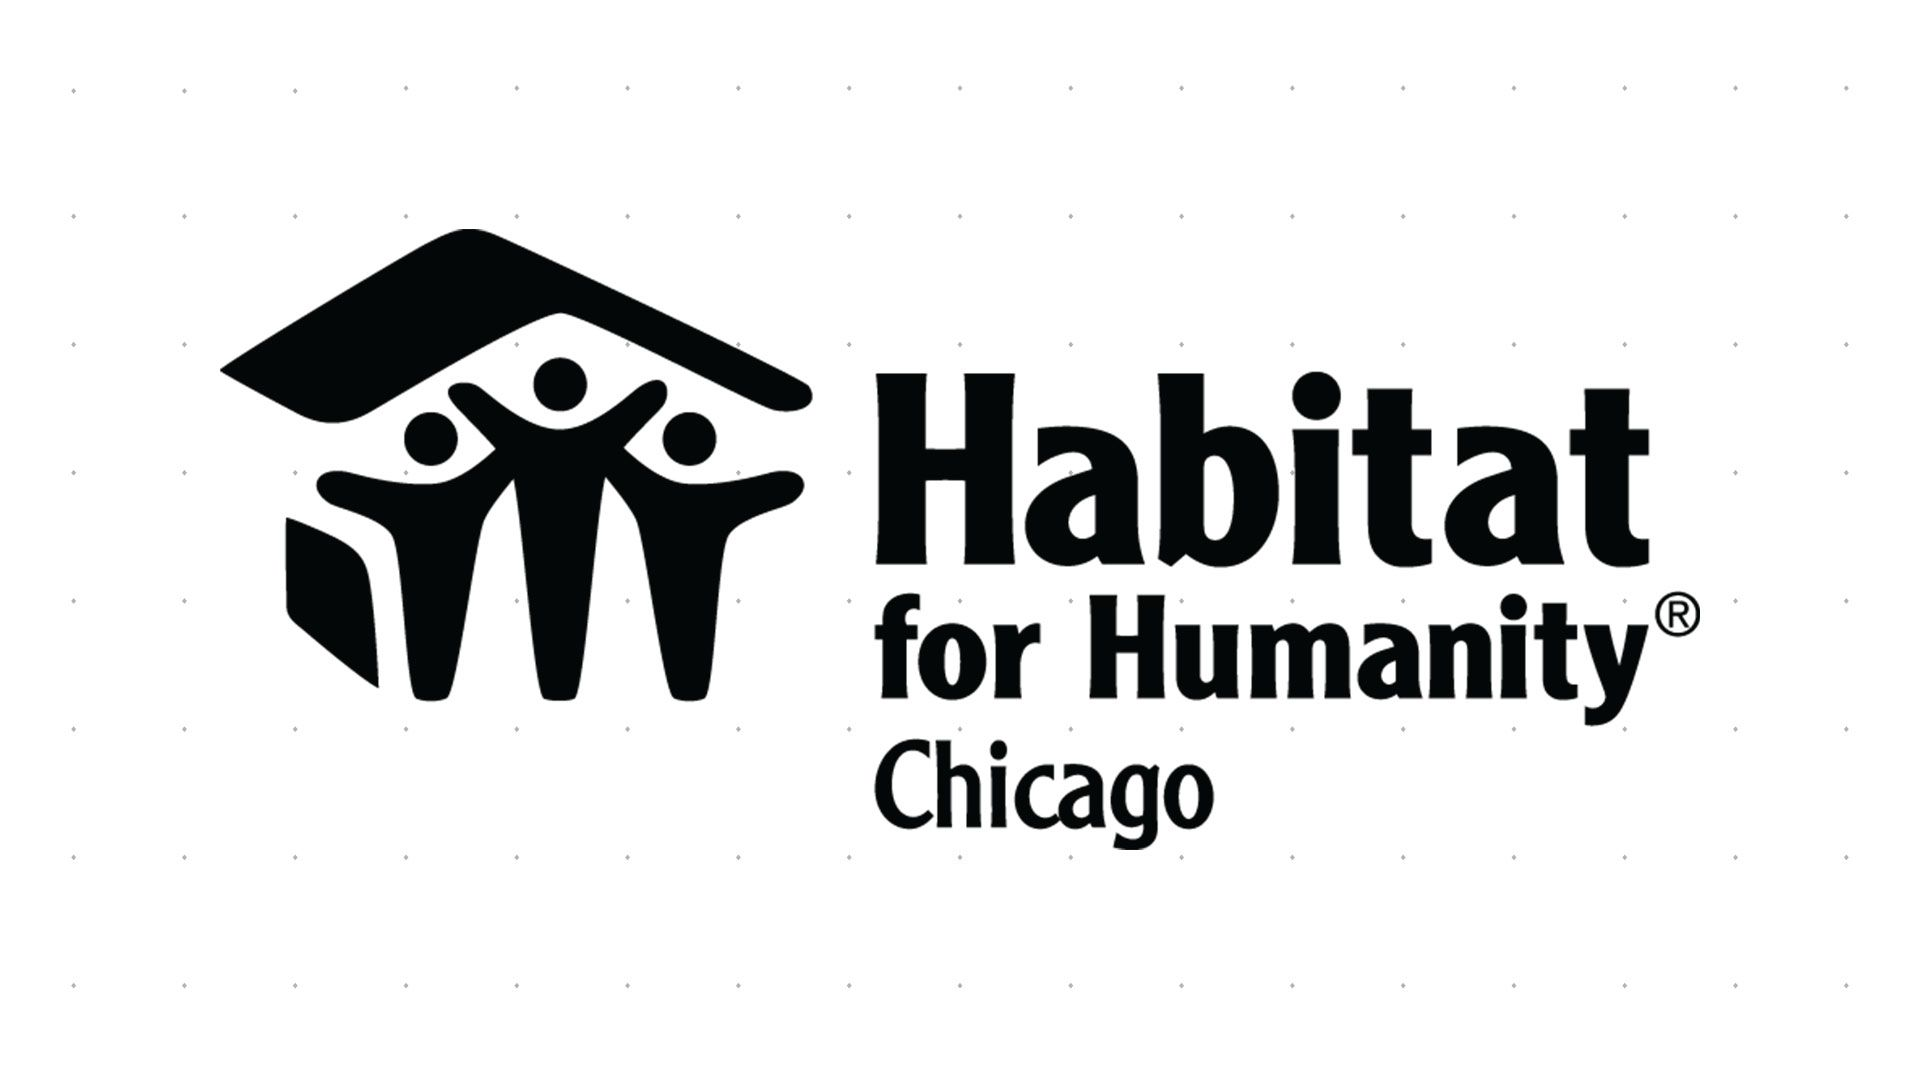 Habitat for Humanity Chicago